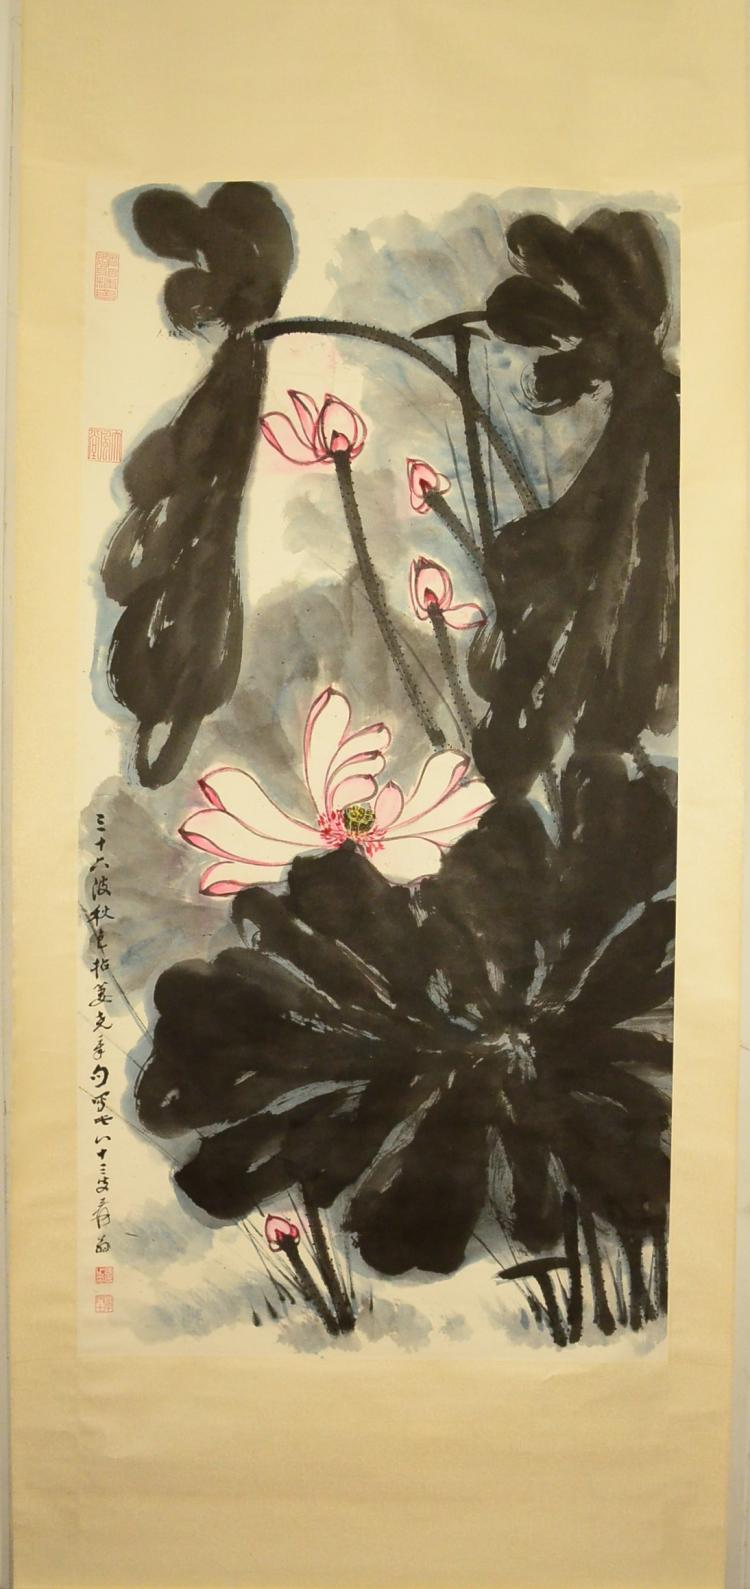 ZHANGDAQIAN MARK, AN INK LOTUS VERTICAL SHAFT